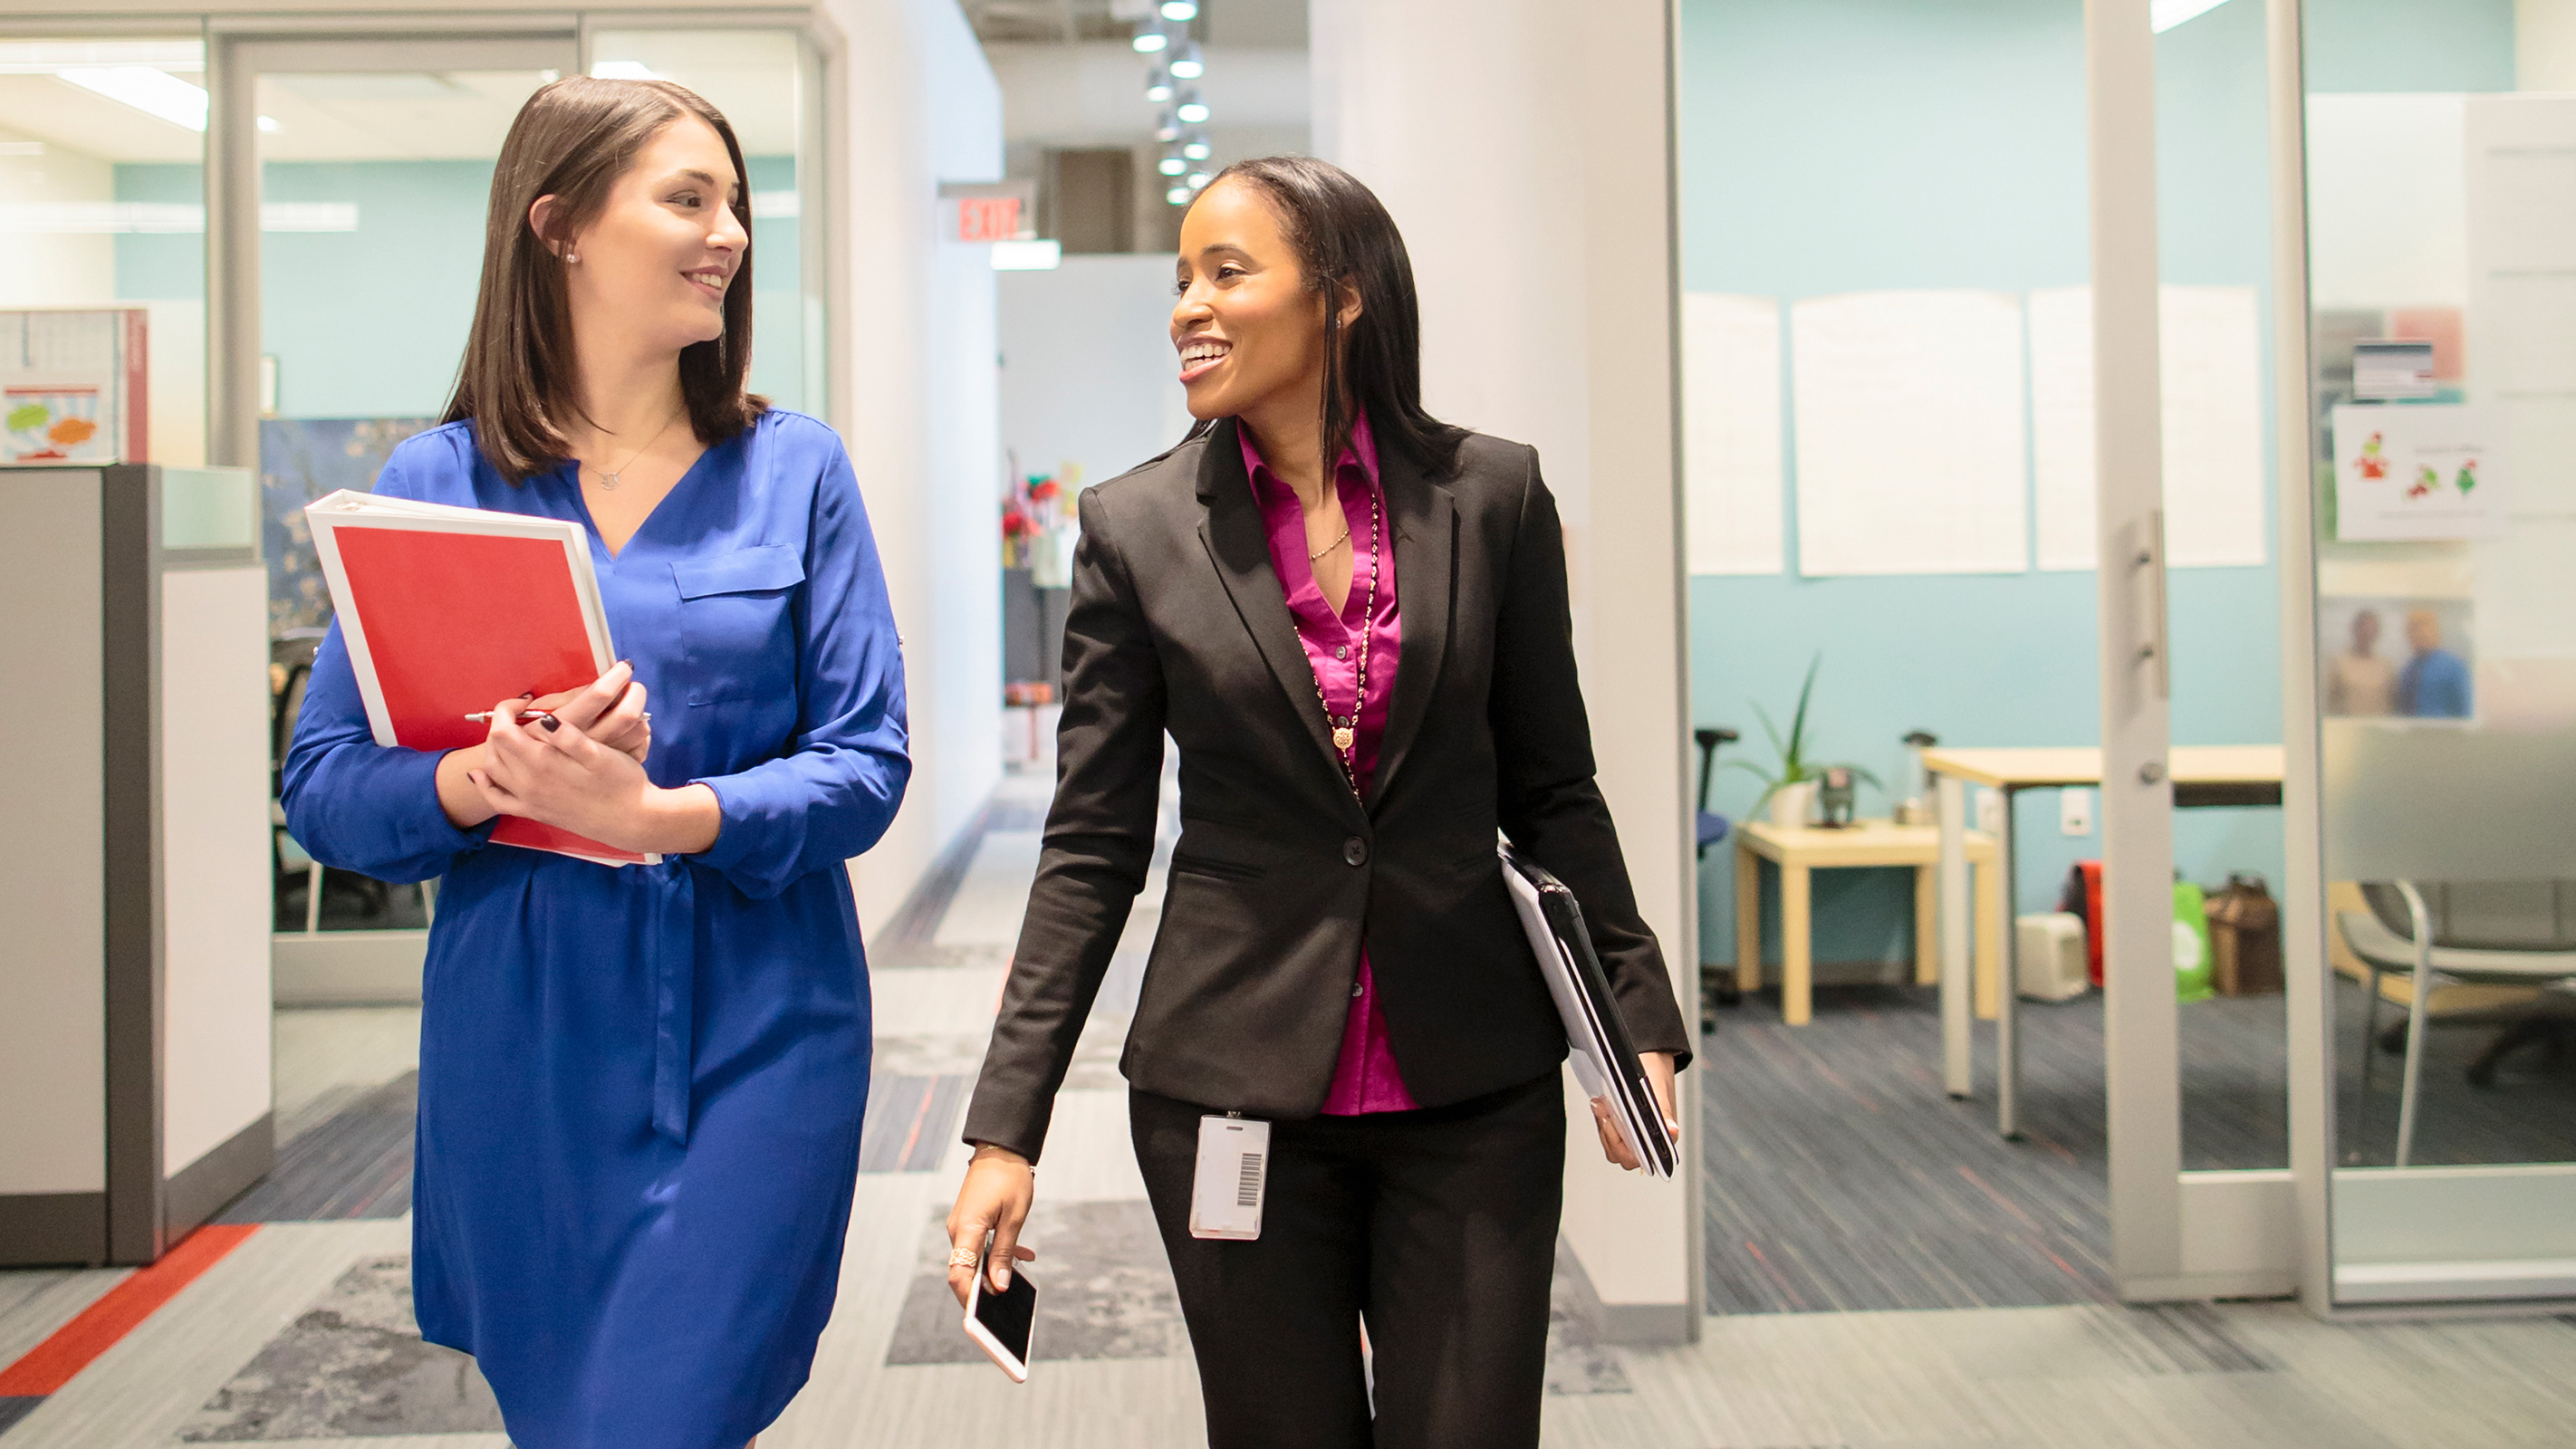 Two CVS Health colleagues walking down a corridor.